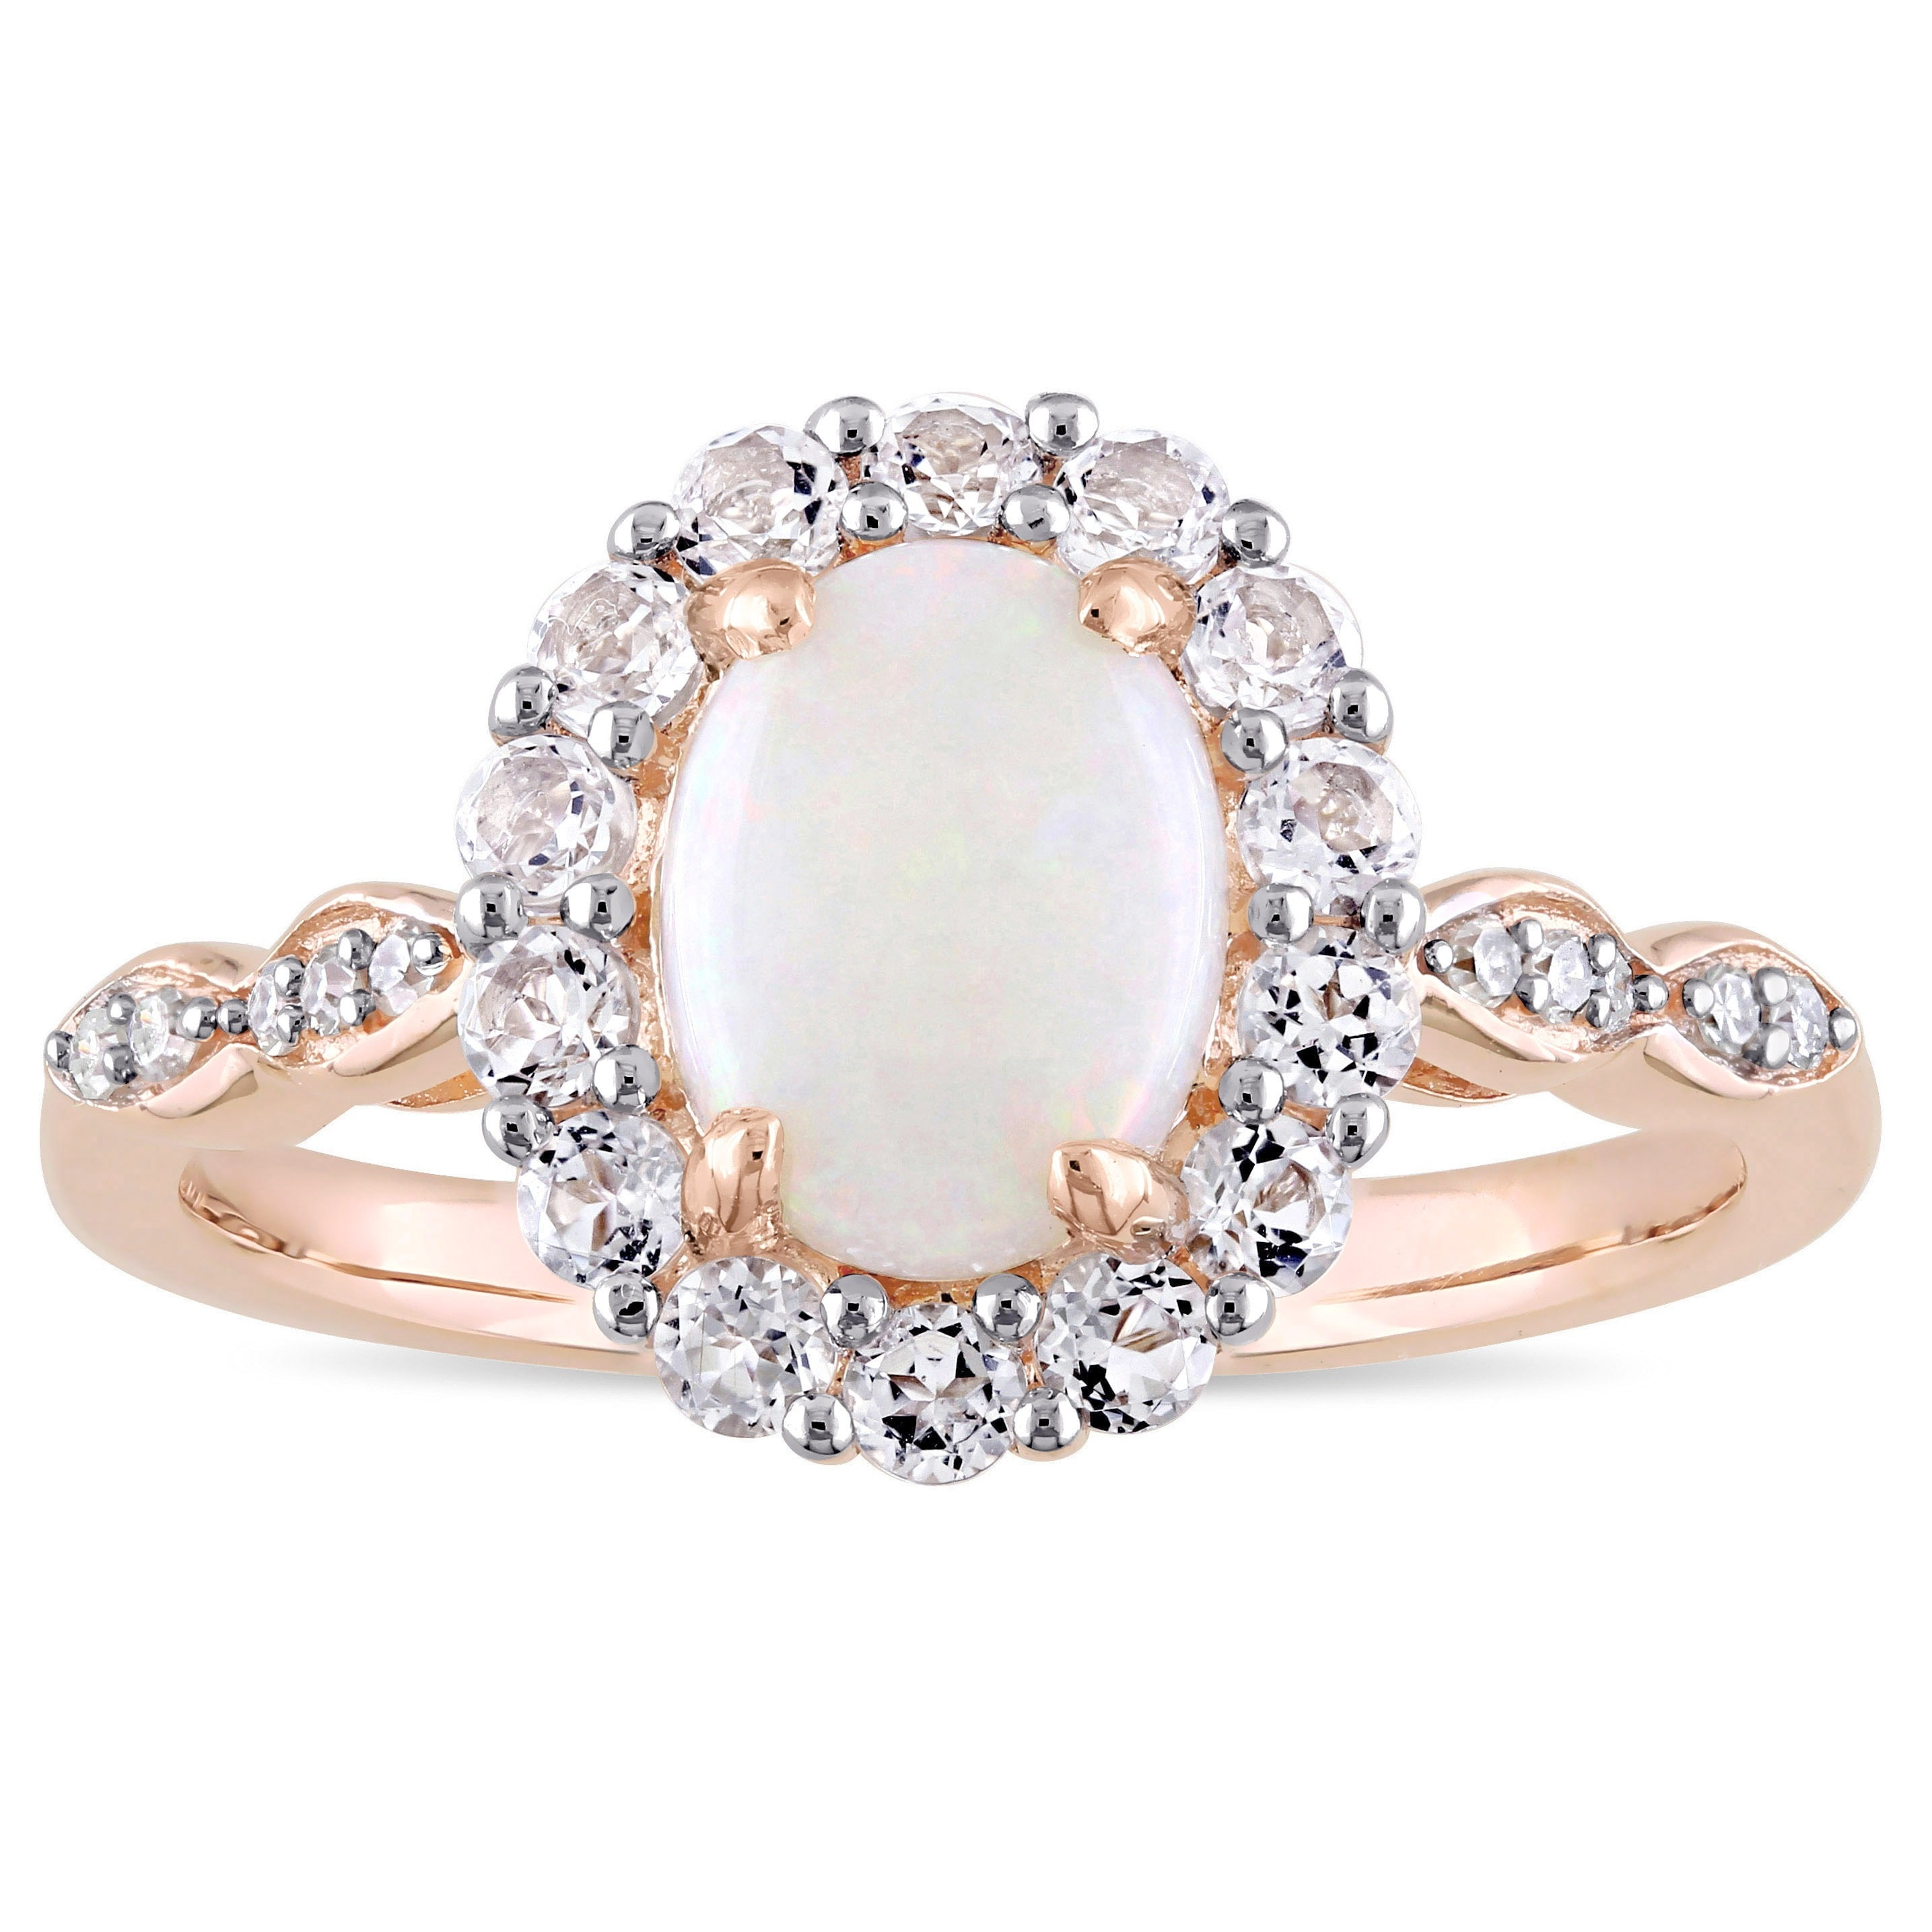 cannon ring engagement diamond mounting shared in with white accents richard prong jewelry accent product rings gold